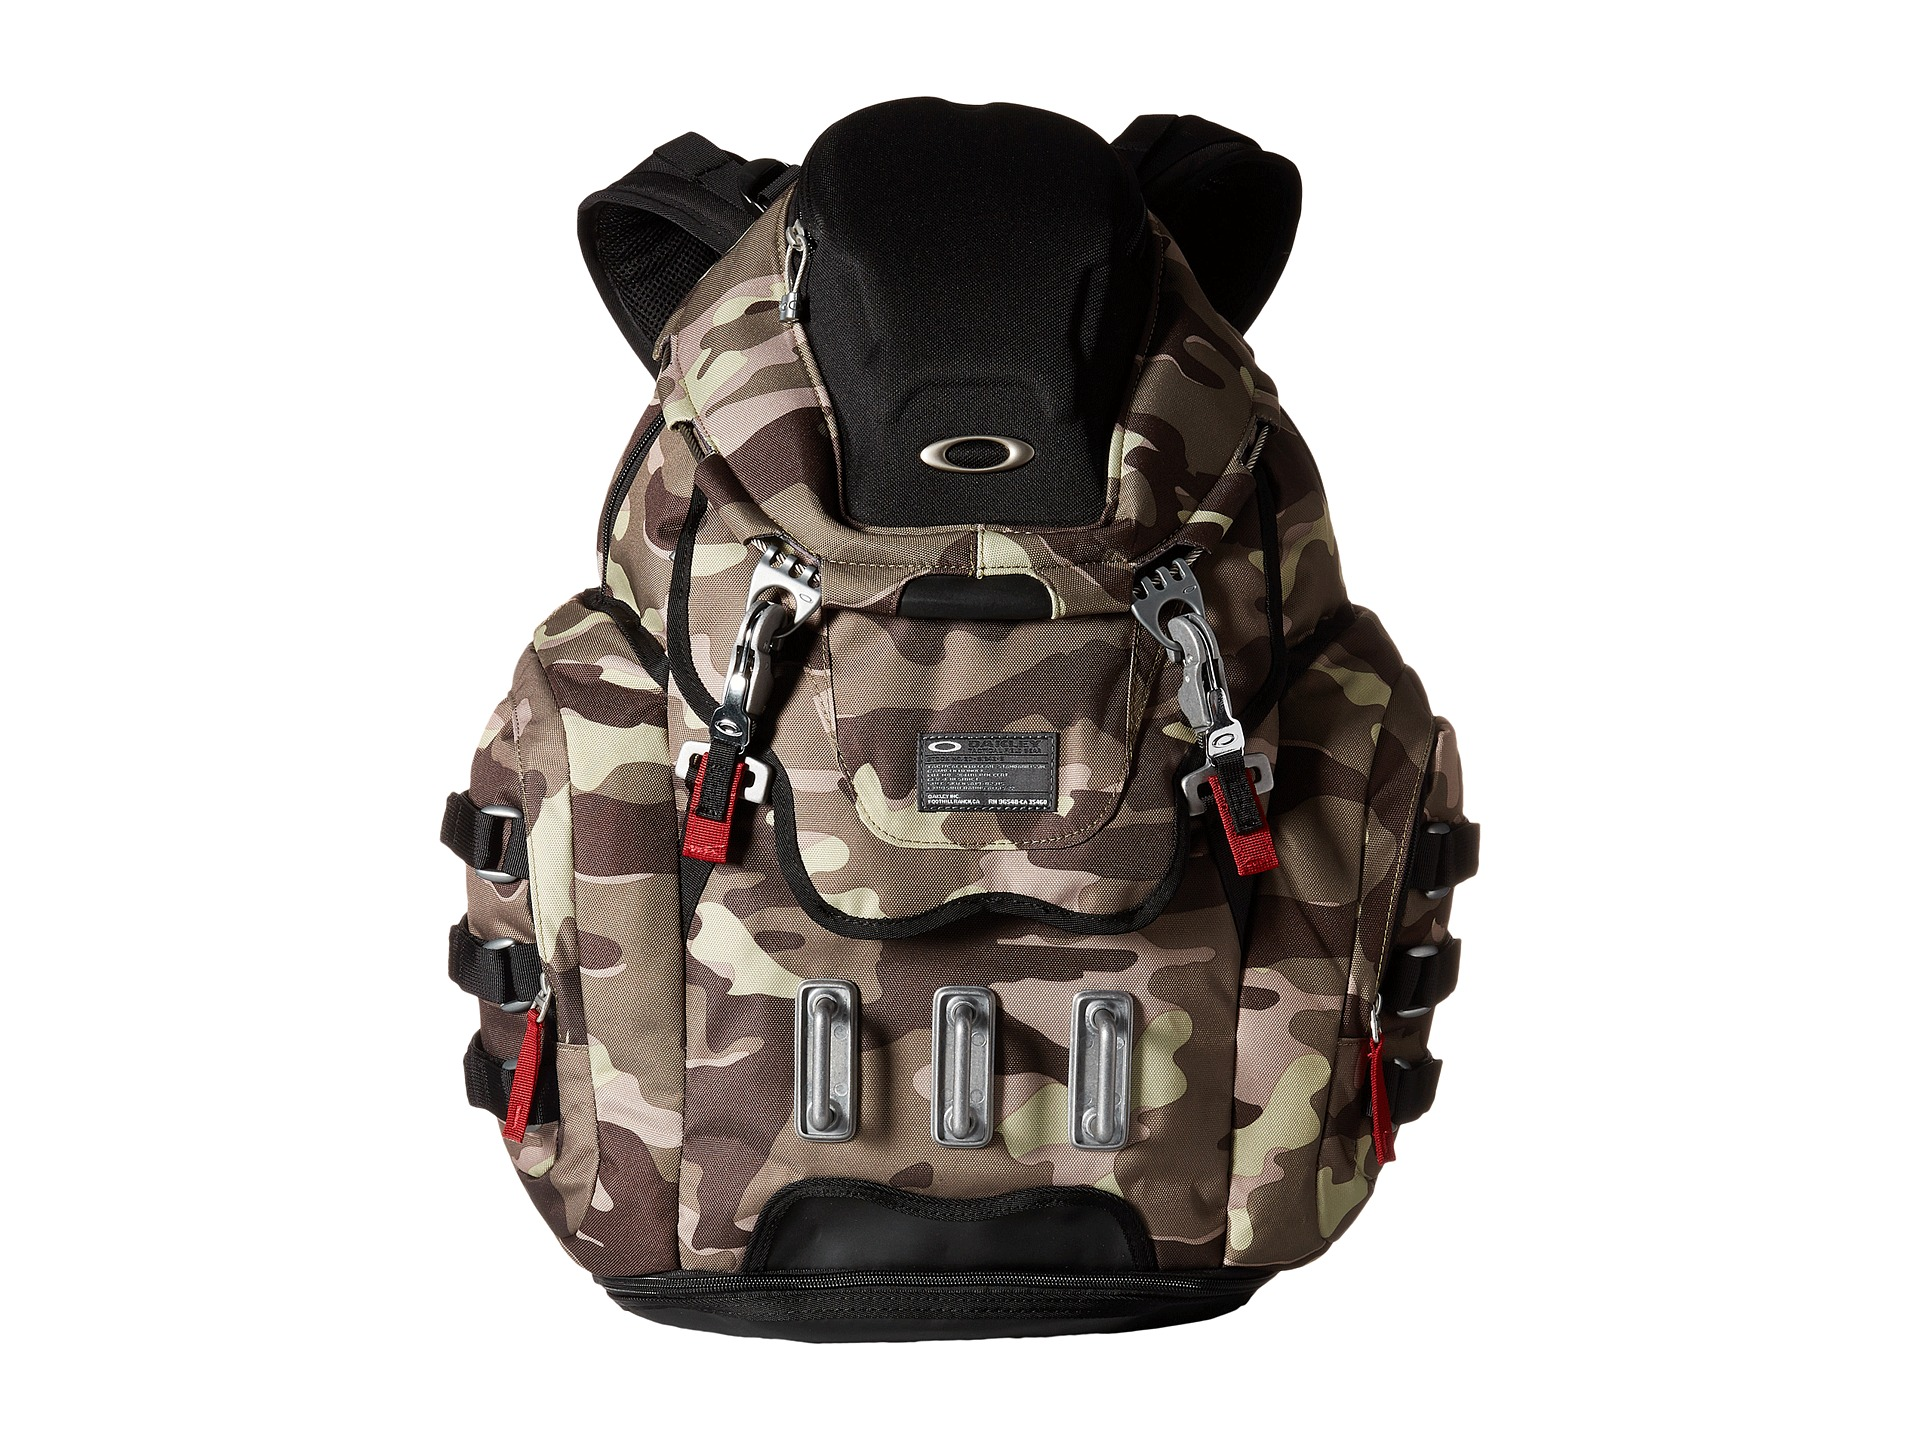 oakley kitchen sink backpack review make cabinets video louisiana